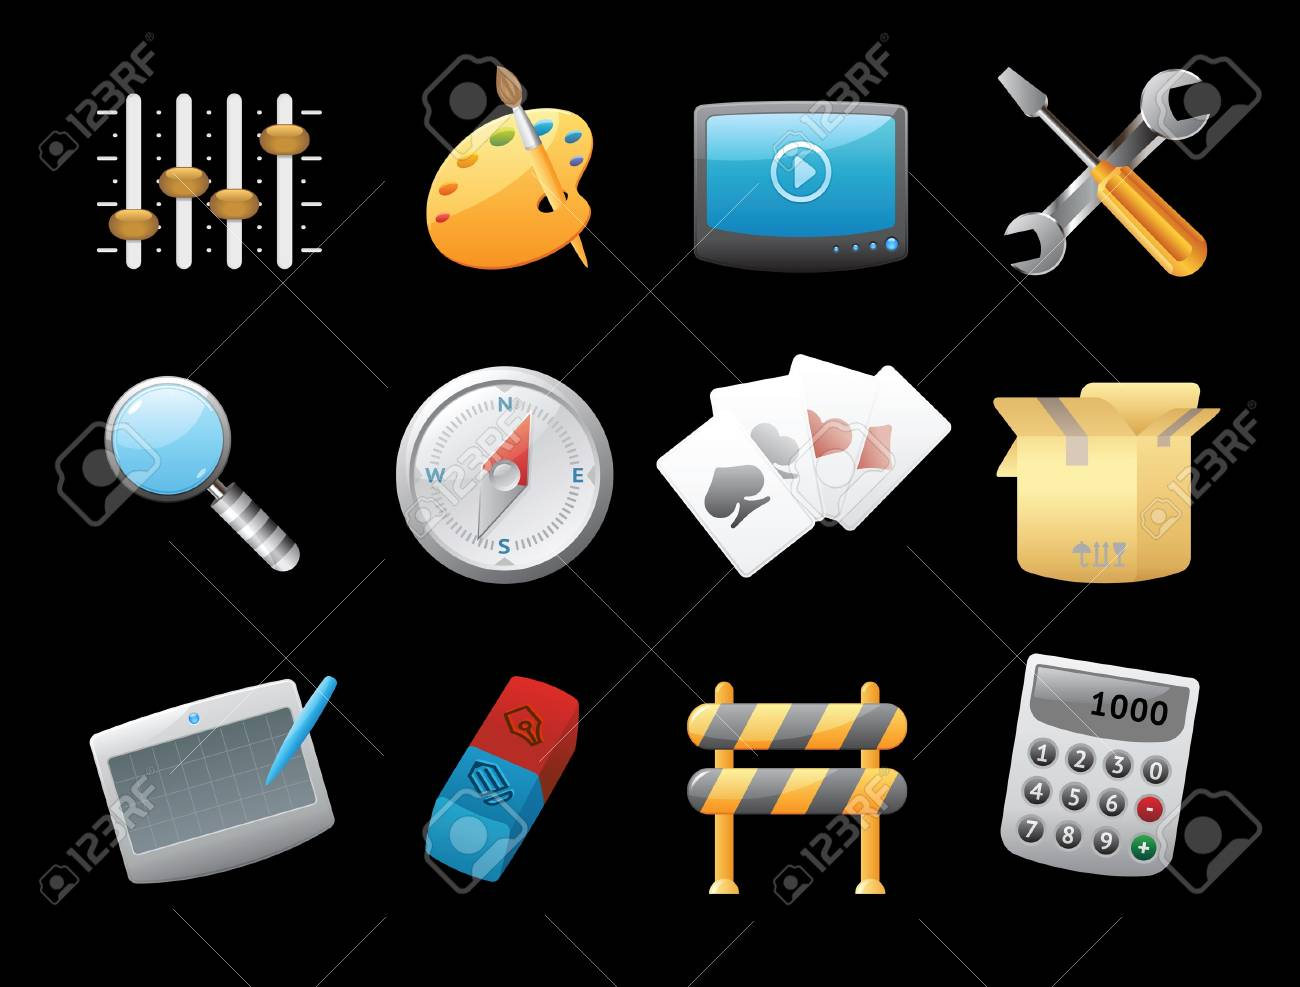 Icons for computer and website interface. Vector illustration. Stock Vector - 11106426